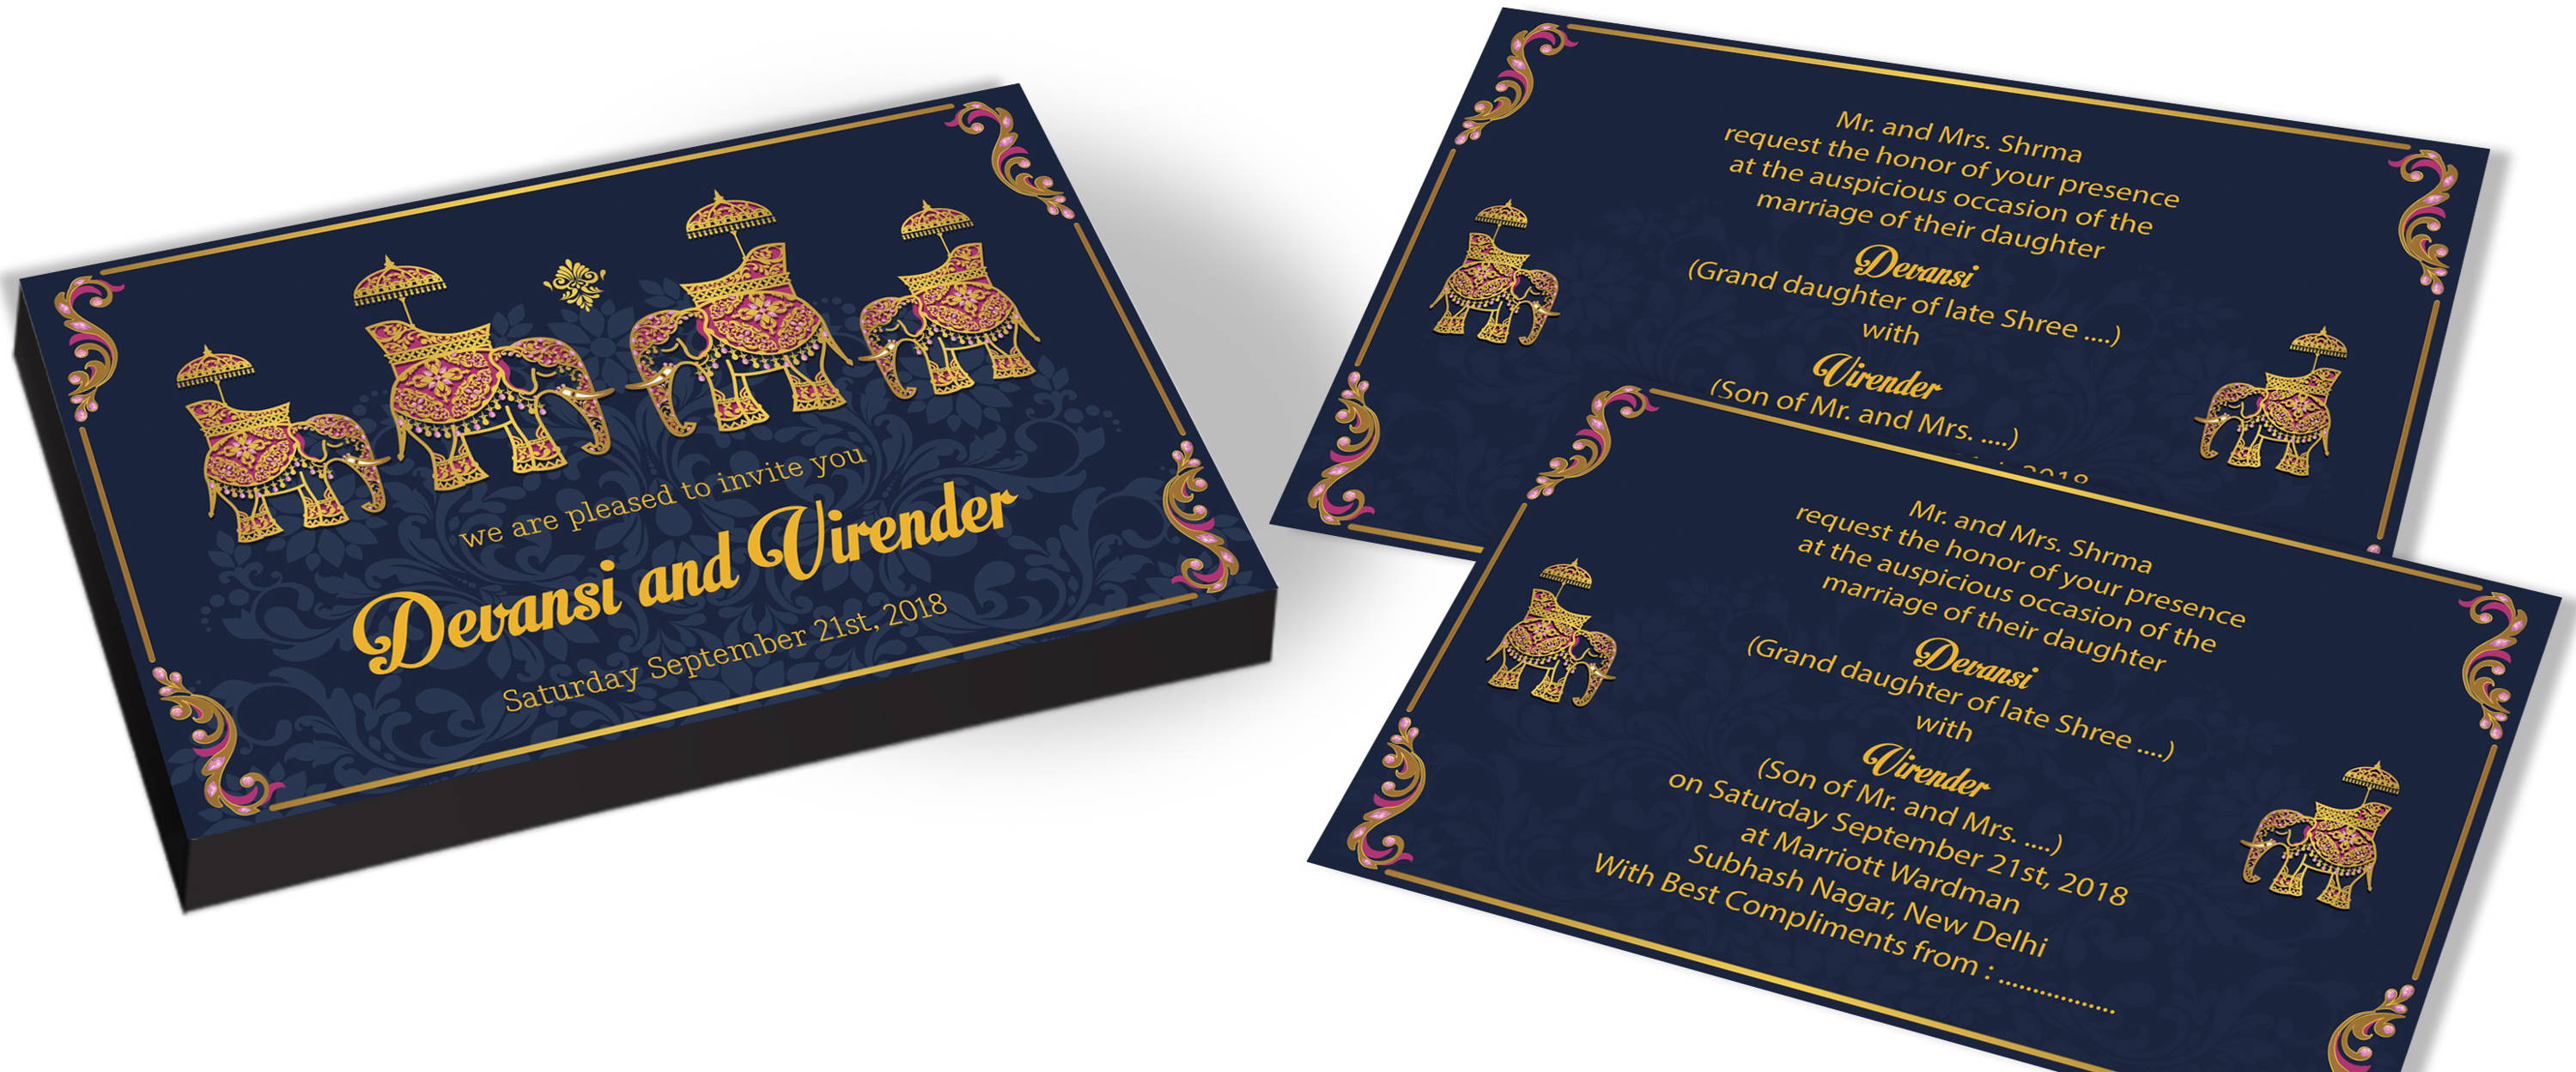 Marriage Invite with Elephant Theme